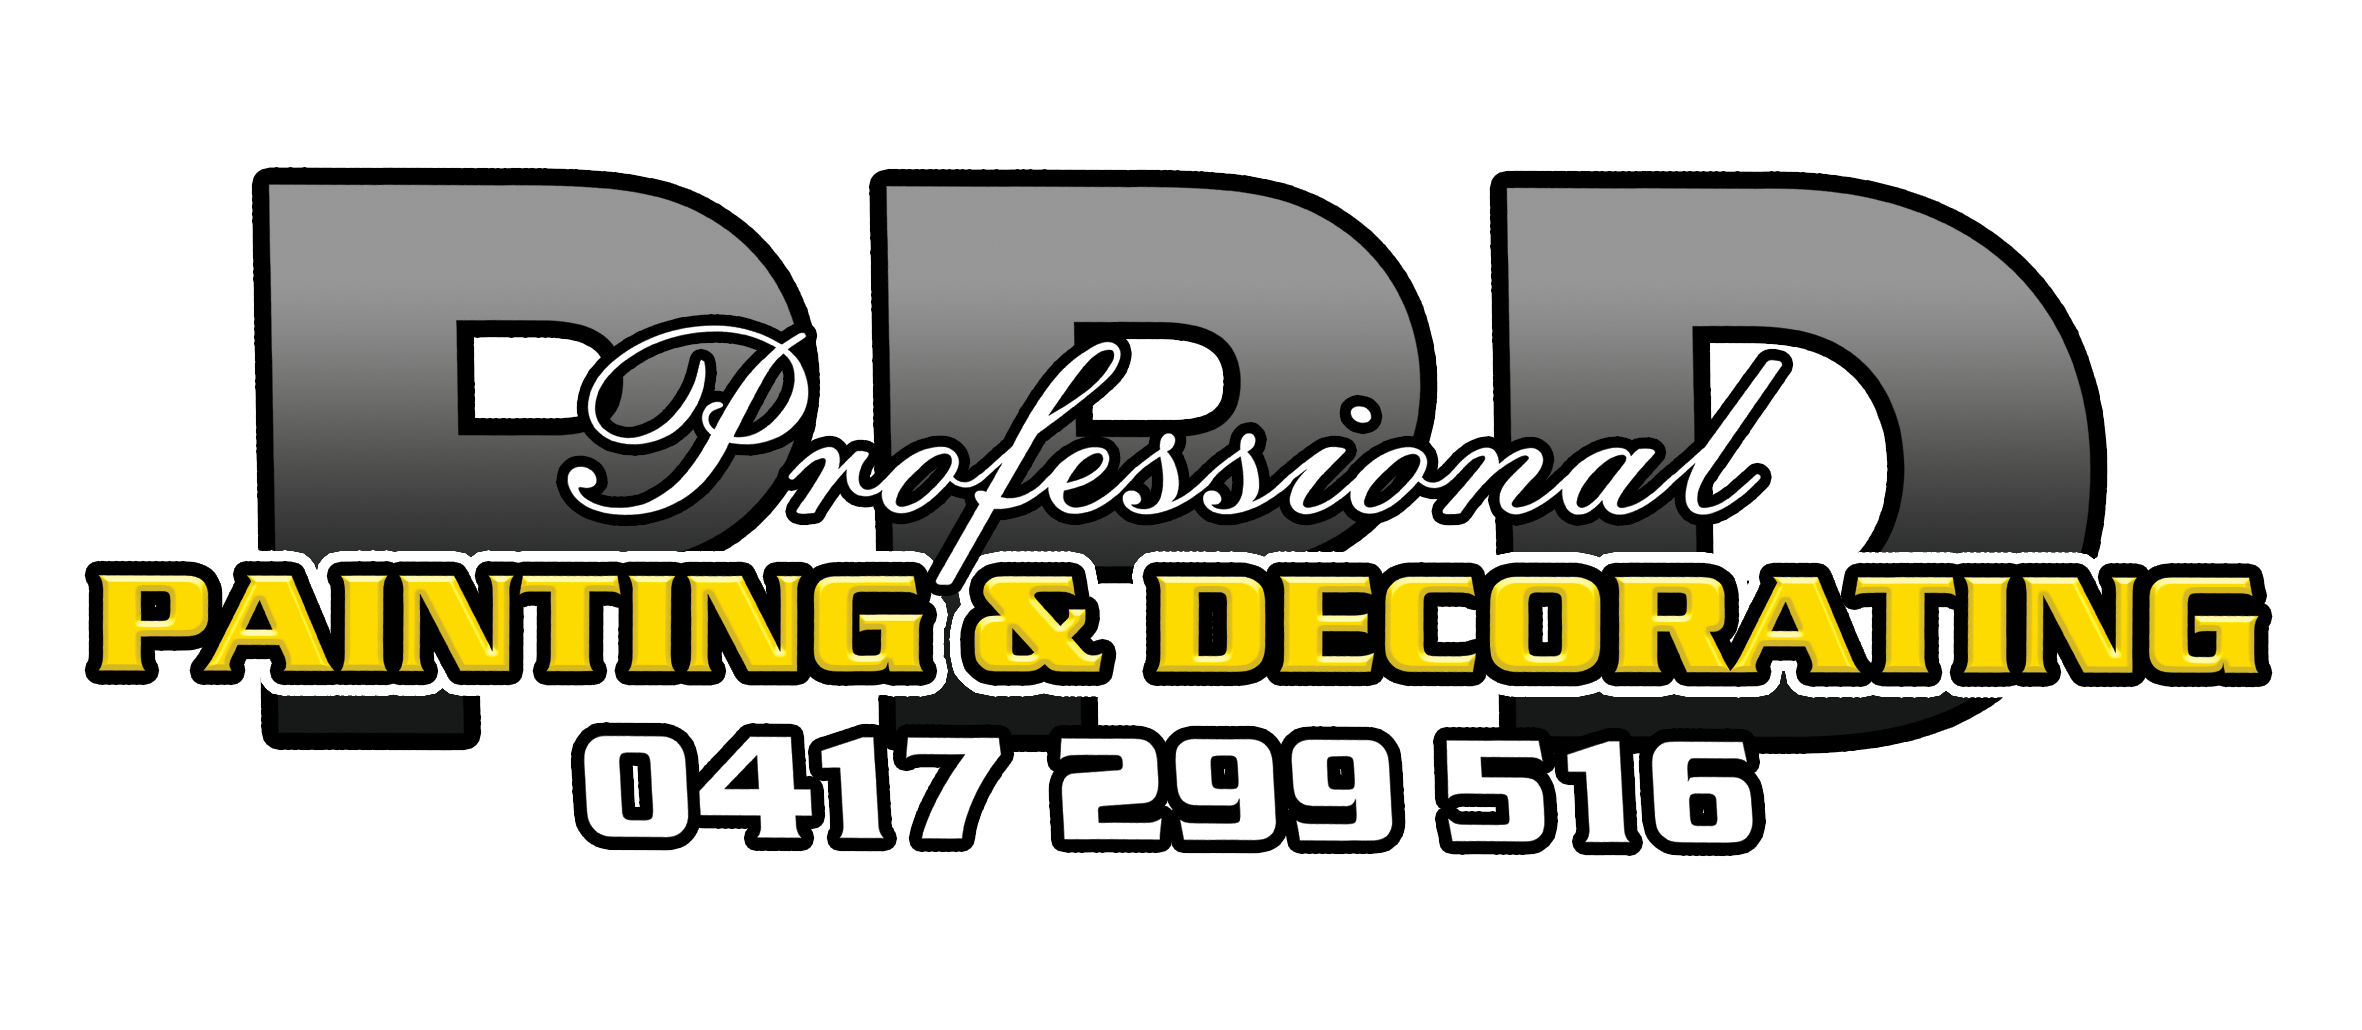 Professional Painting and Decorating Pty Ltd | Darwin NT painting and decorating